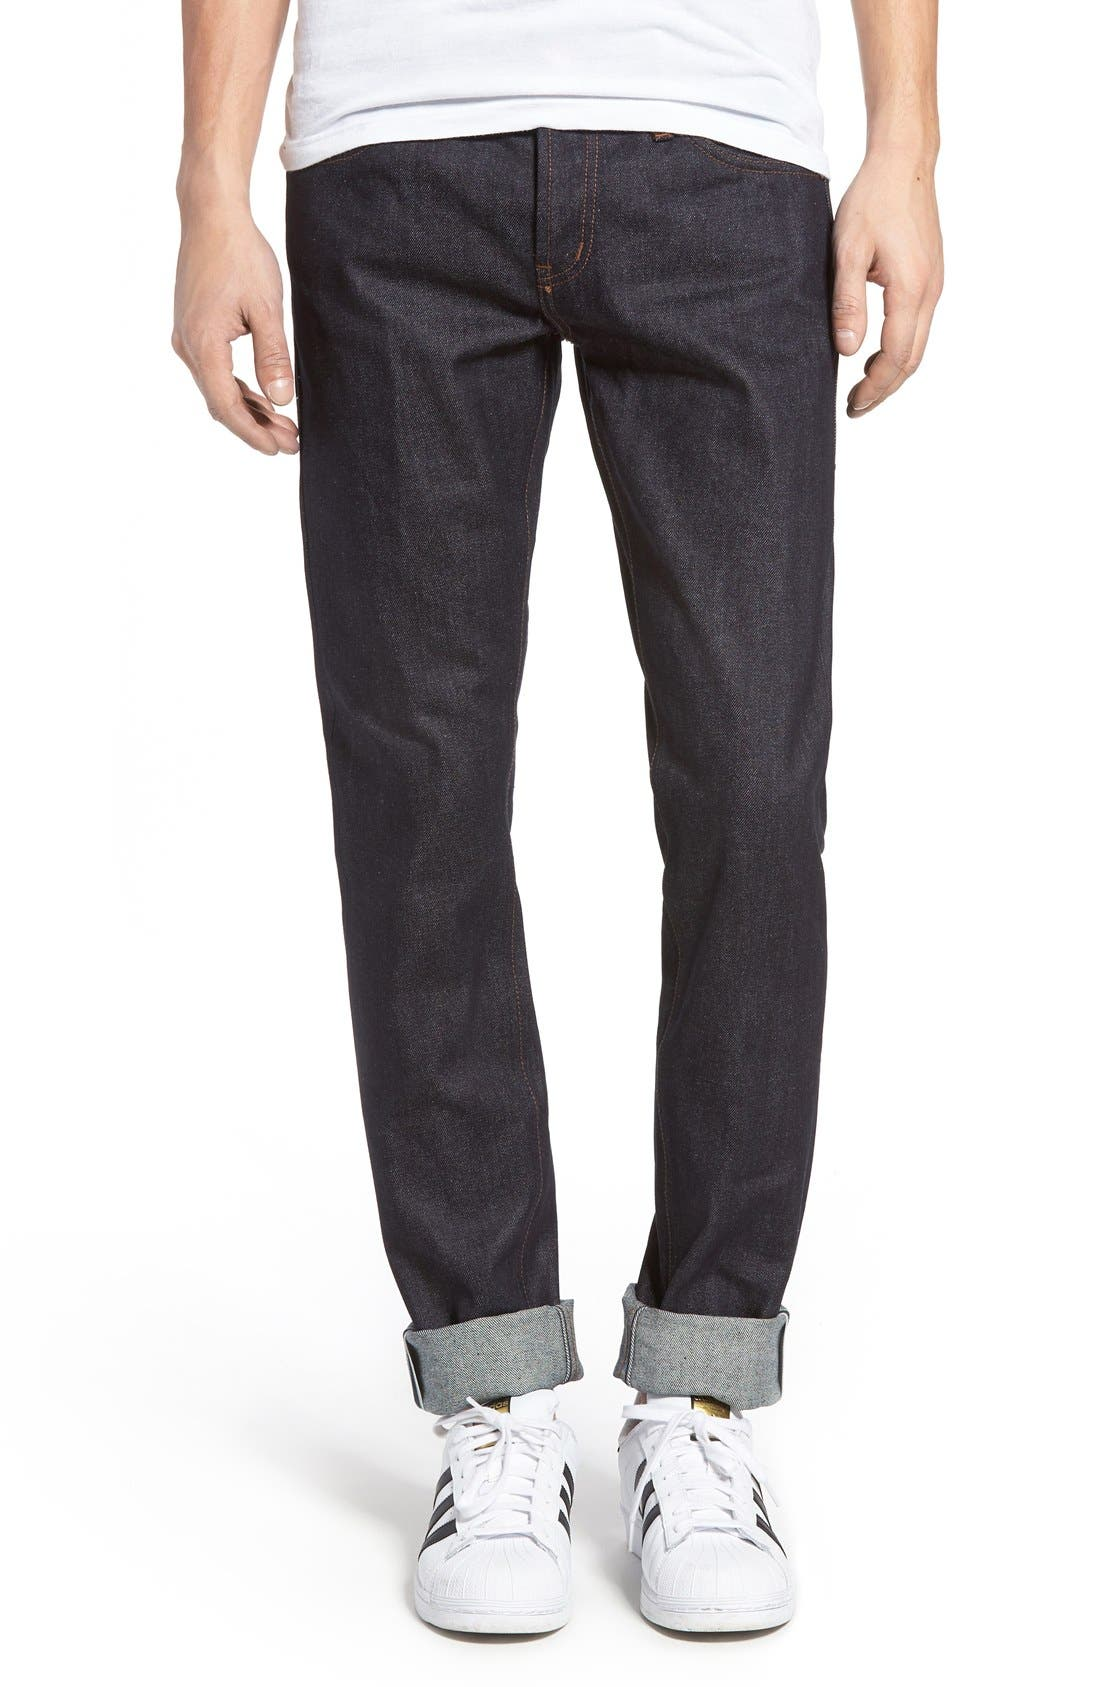 The Unbranded Brand UB401 Selvedge Skinny Fit Jeans